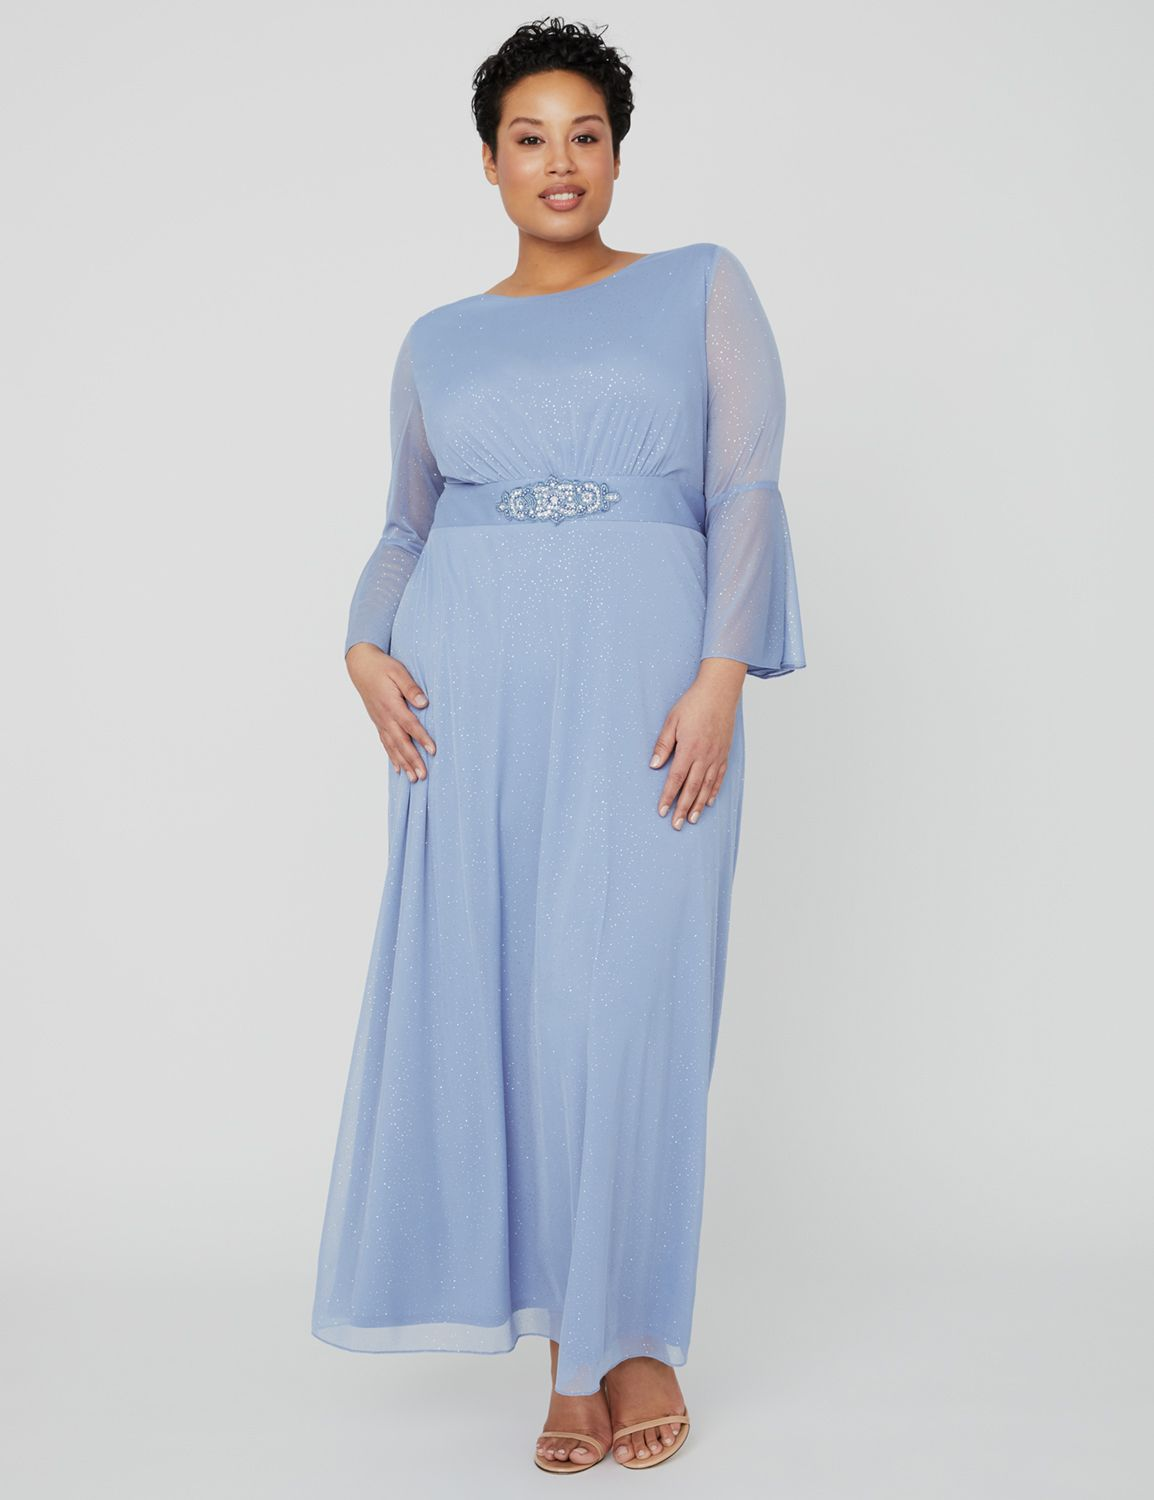 Twilight Sky Gown 1090991 Empire Waist Dress with Wai MP-300099838